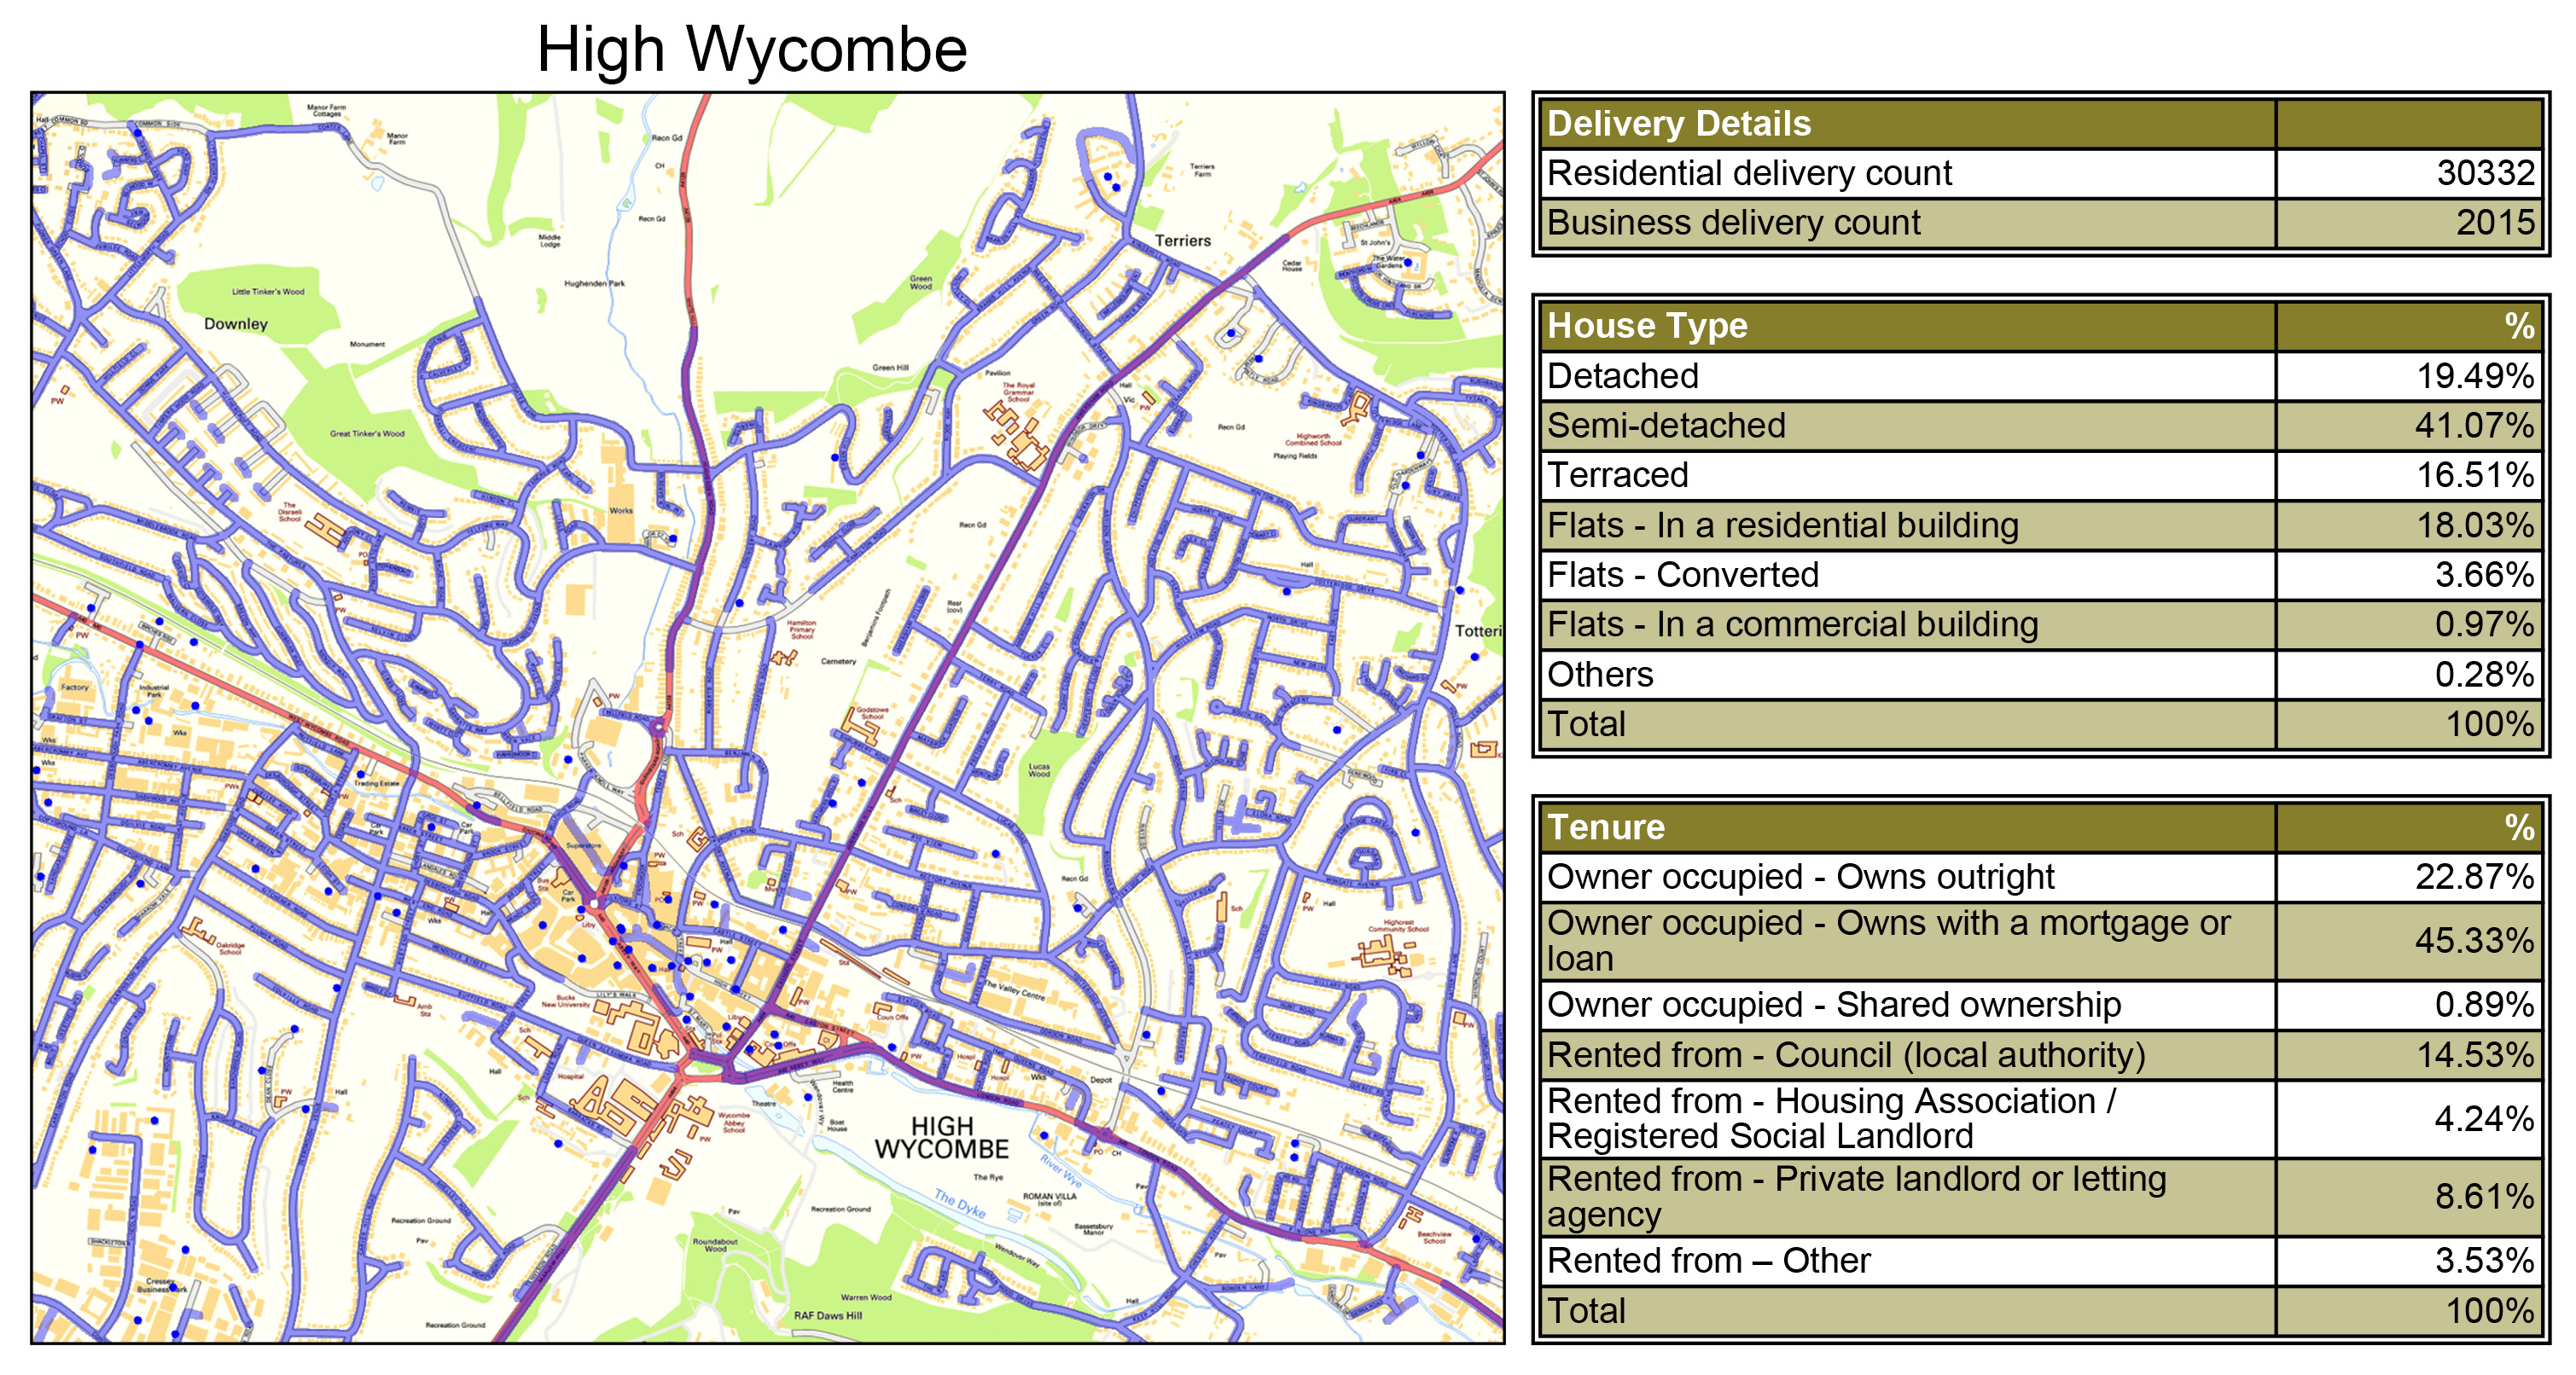 Leaflet Distribution High Wycombe - Geoplan Image